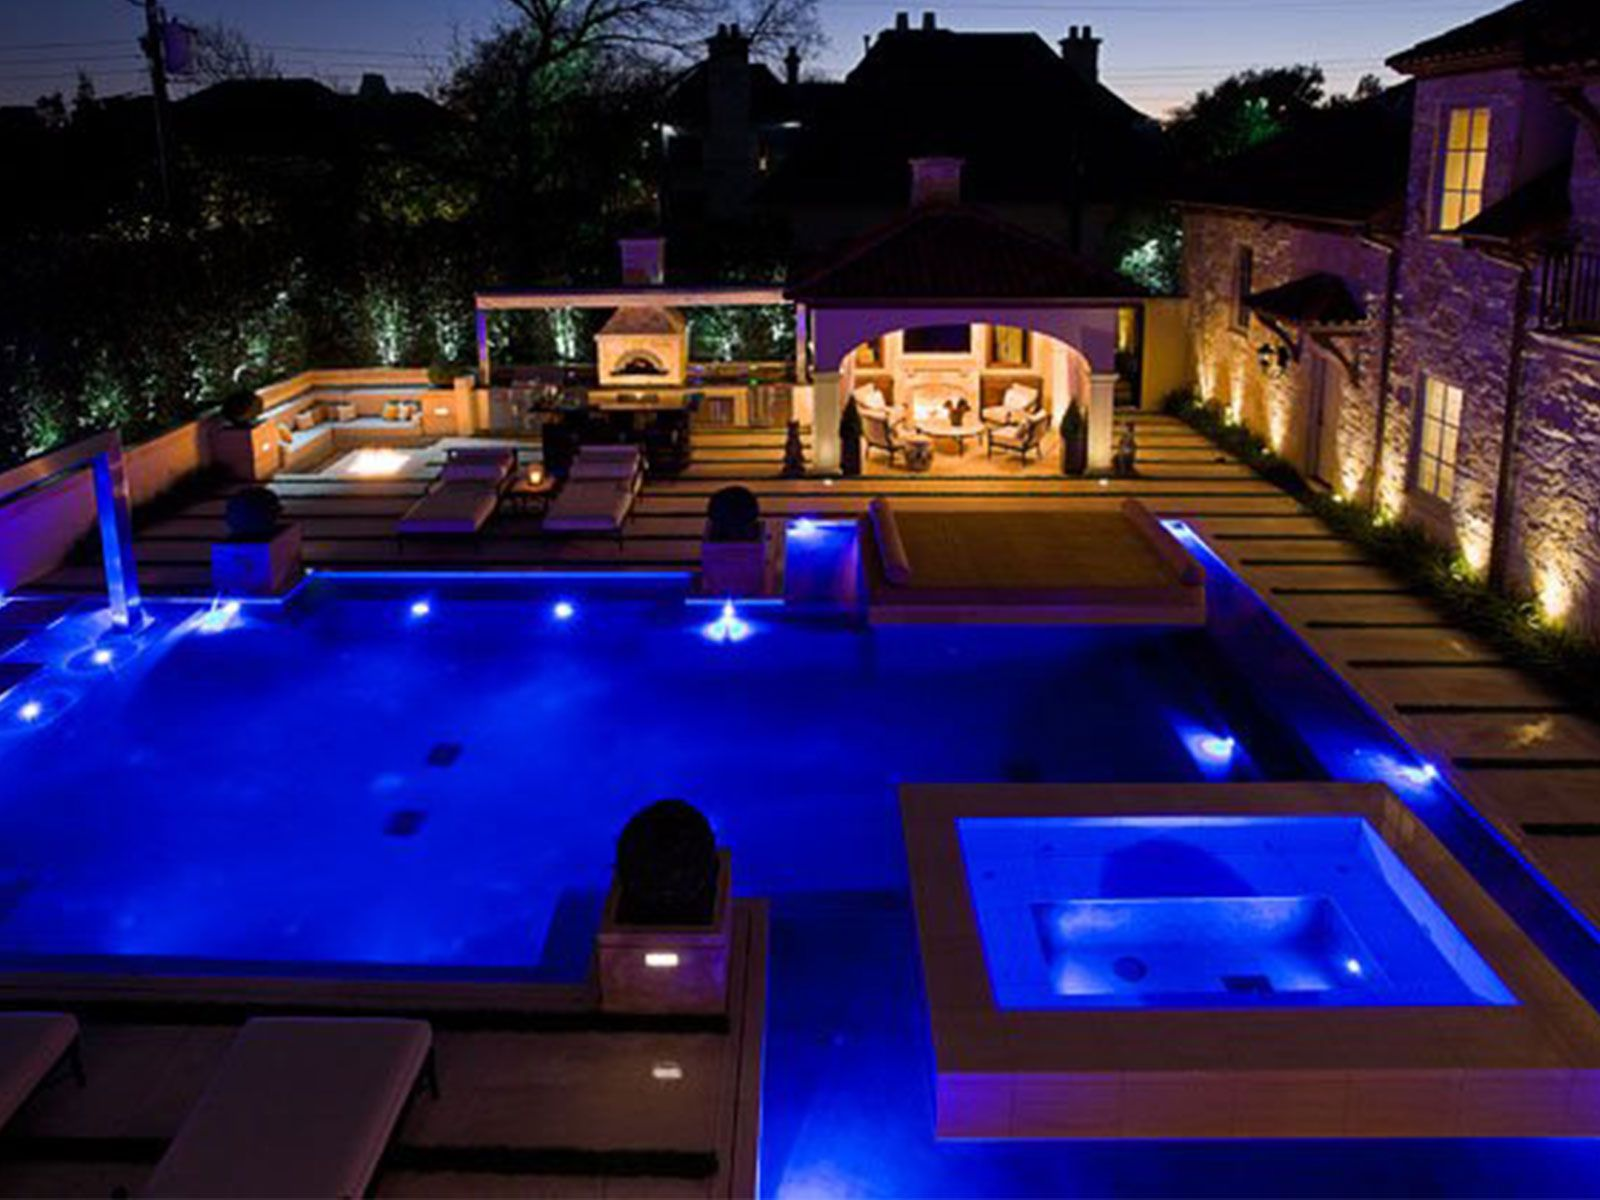 Swimming Pool Ideas if you have a swimming pool you will find this idea for a way to Swimming Pool Design Ideas Luxury Swimming Pools By 2x Best Design Winner Nj Dazzling Ideas Of